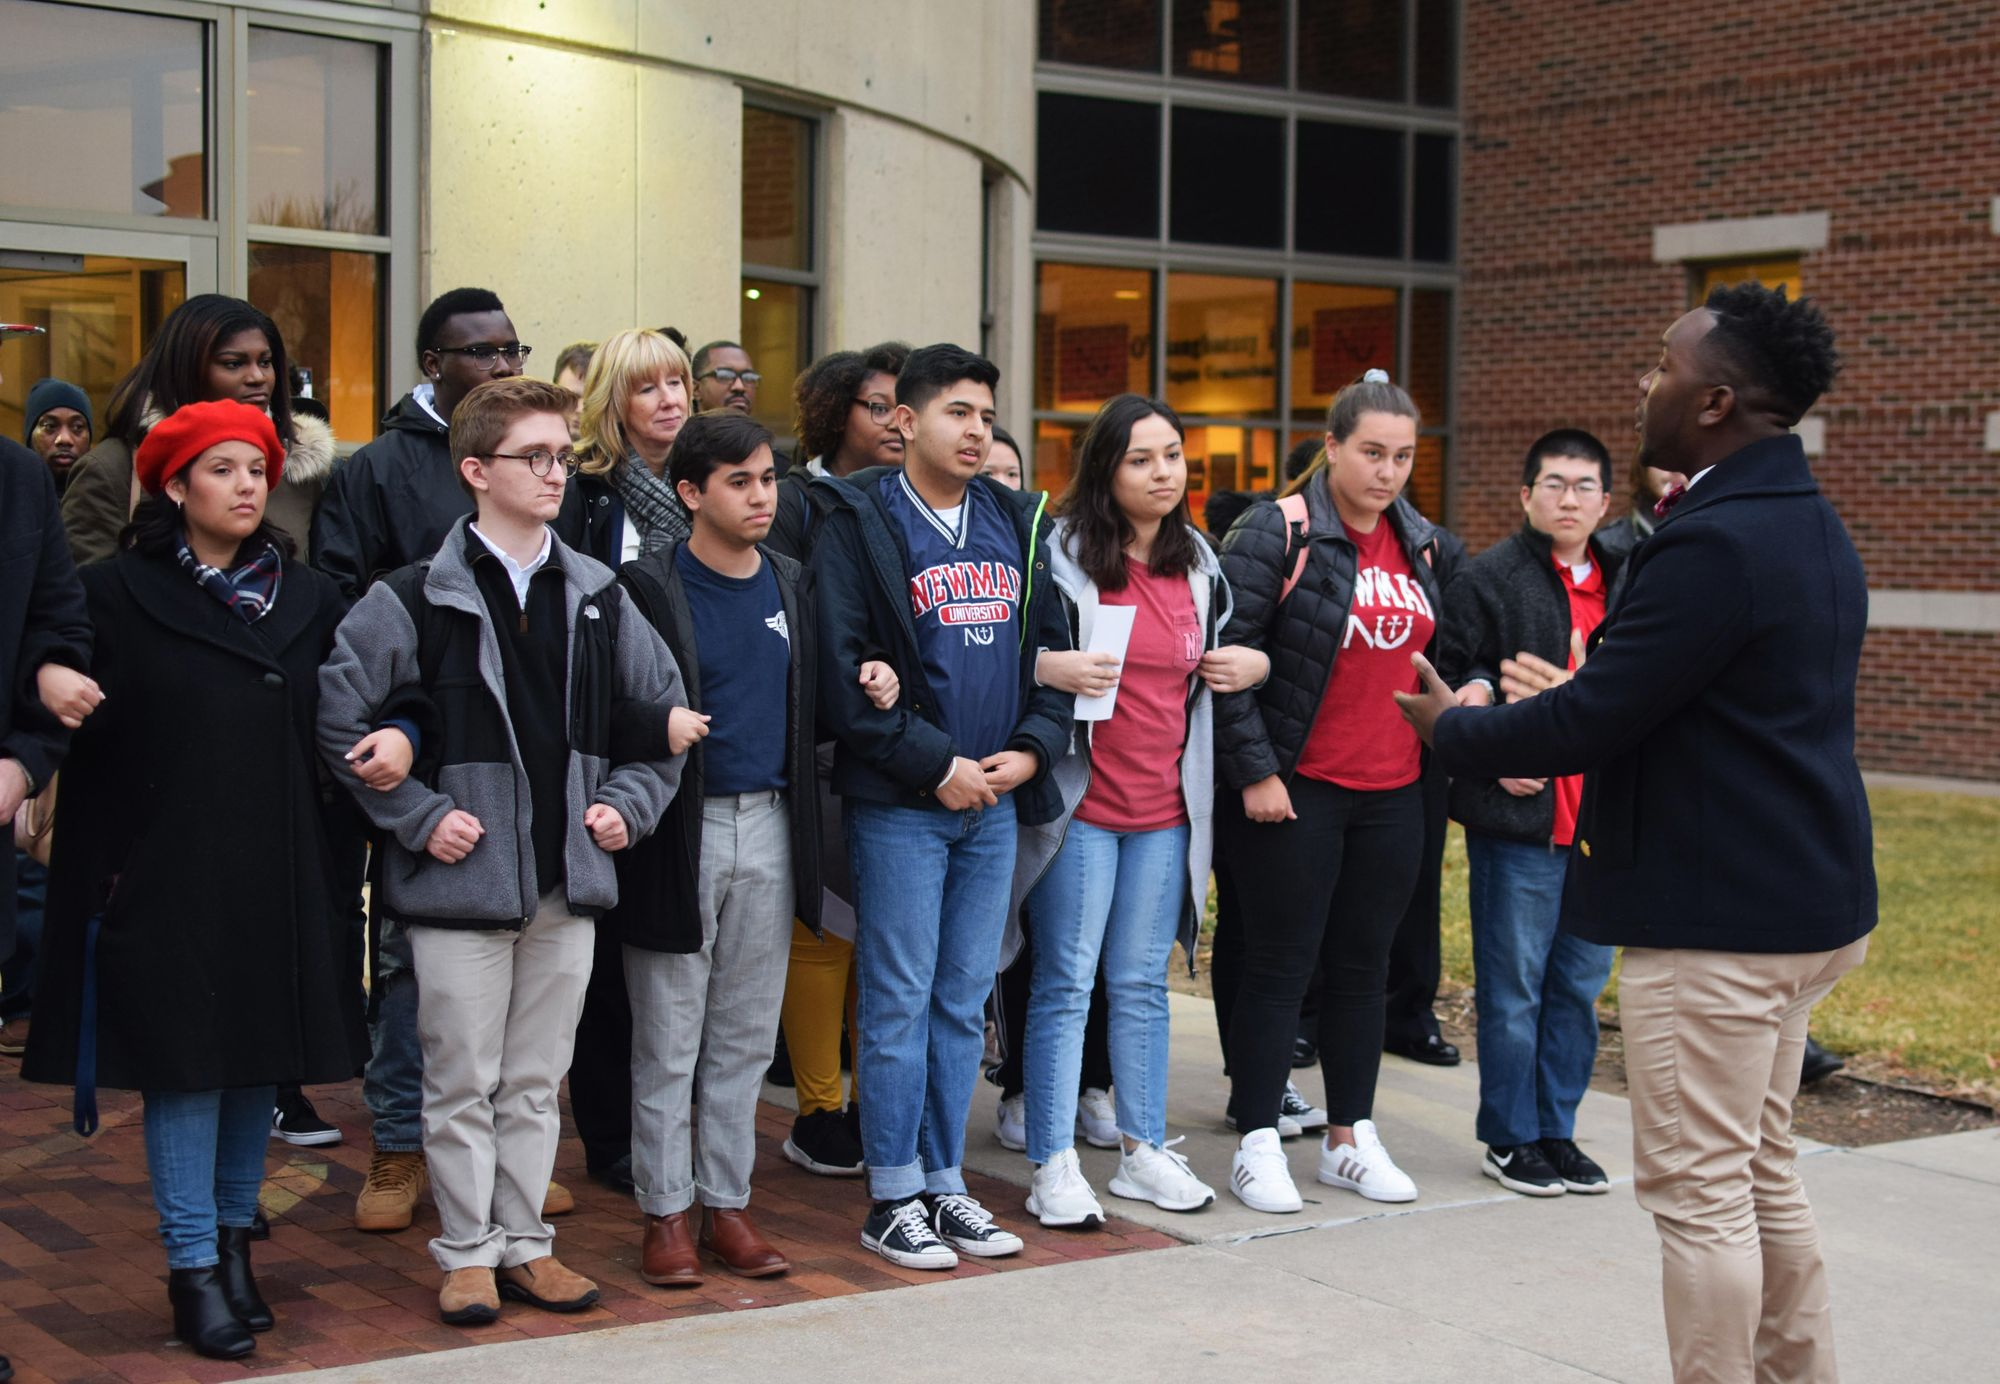 Campus unity march honors Dr. Martin Luther King Jr.